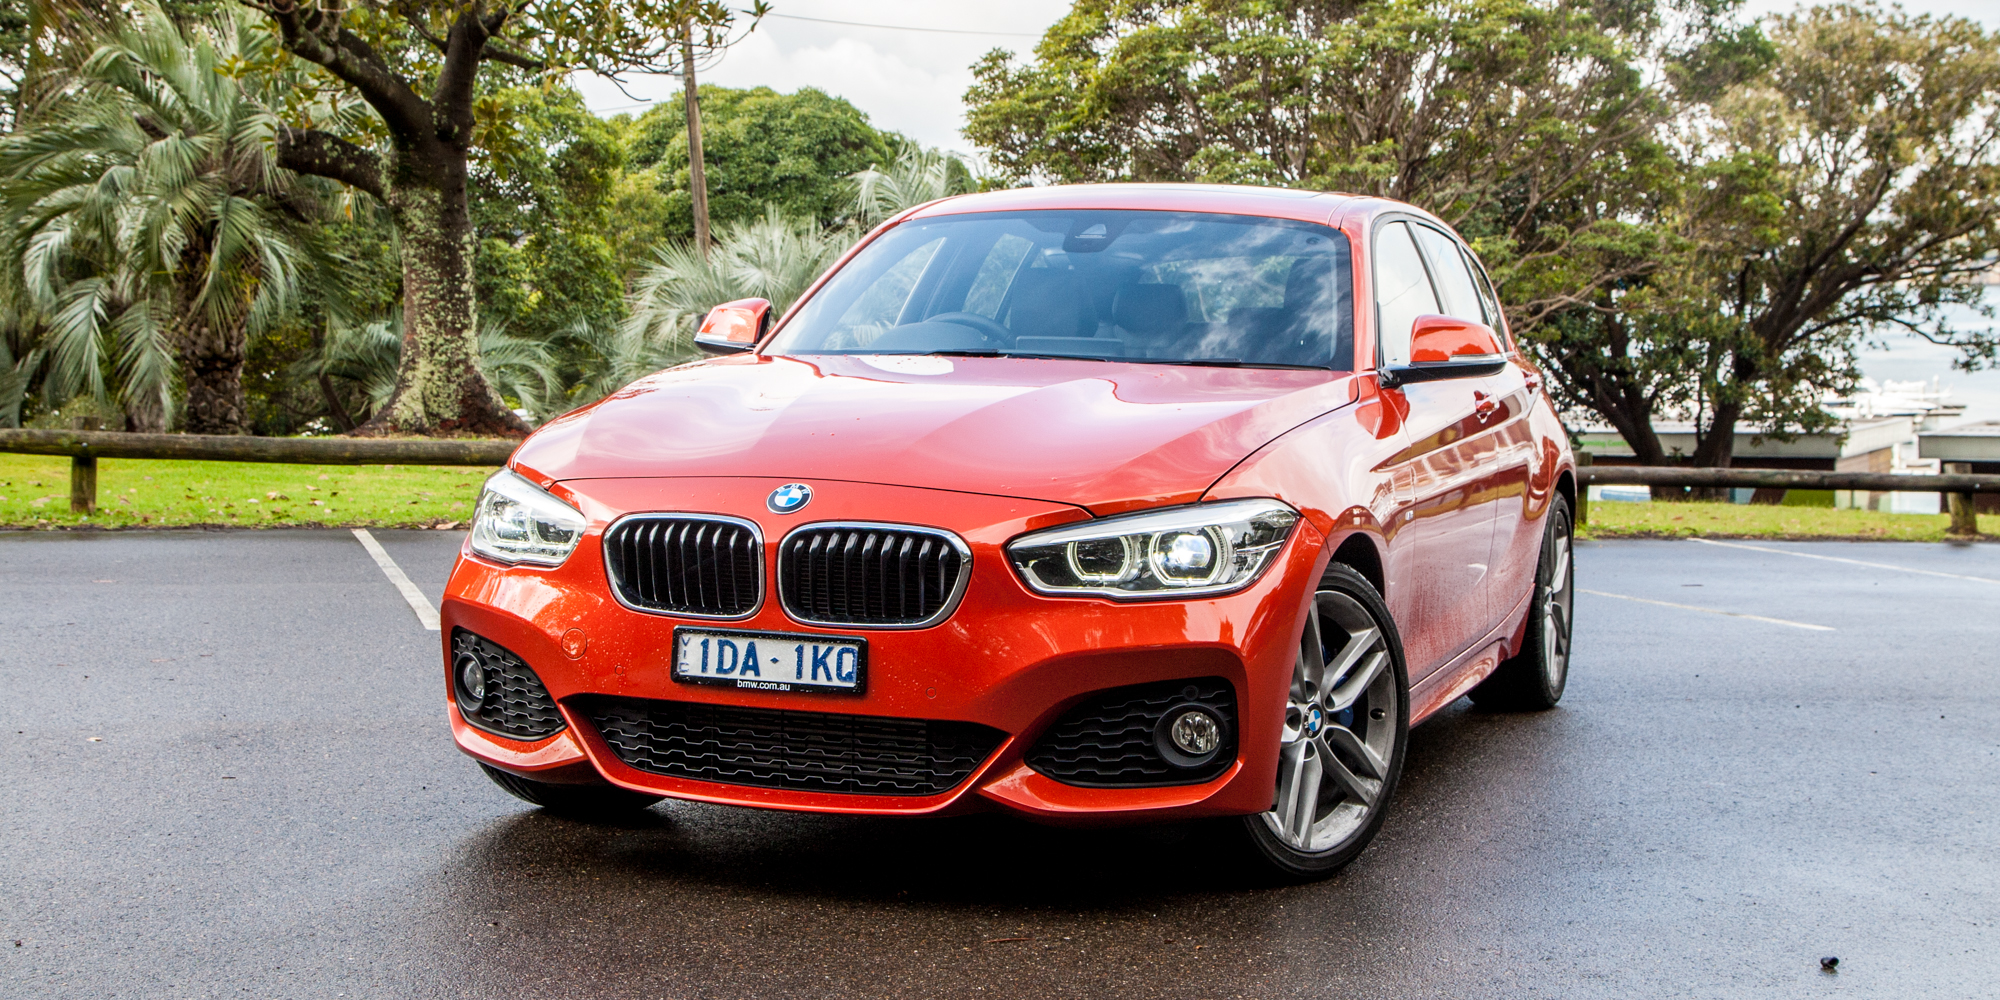 2015 Bmw 125i Front (Photo 5 of 15)